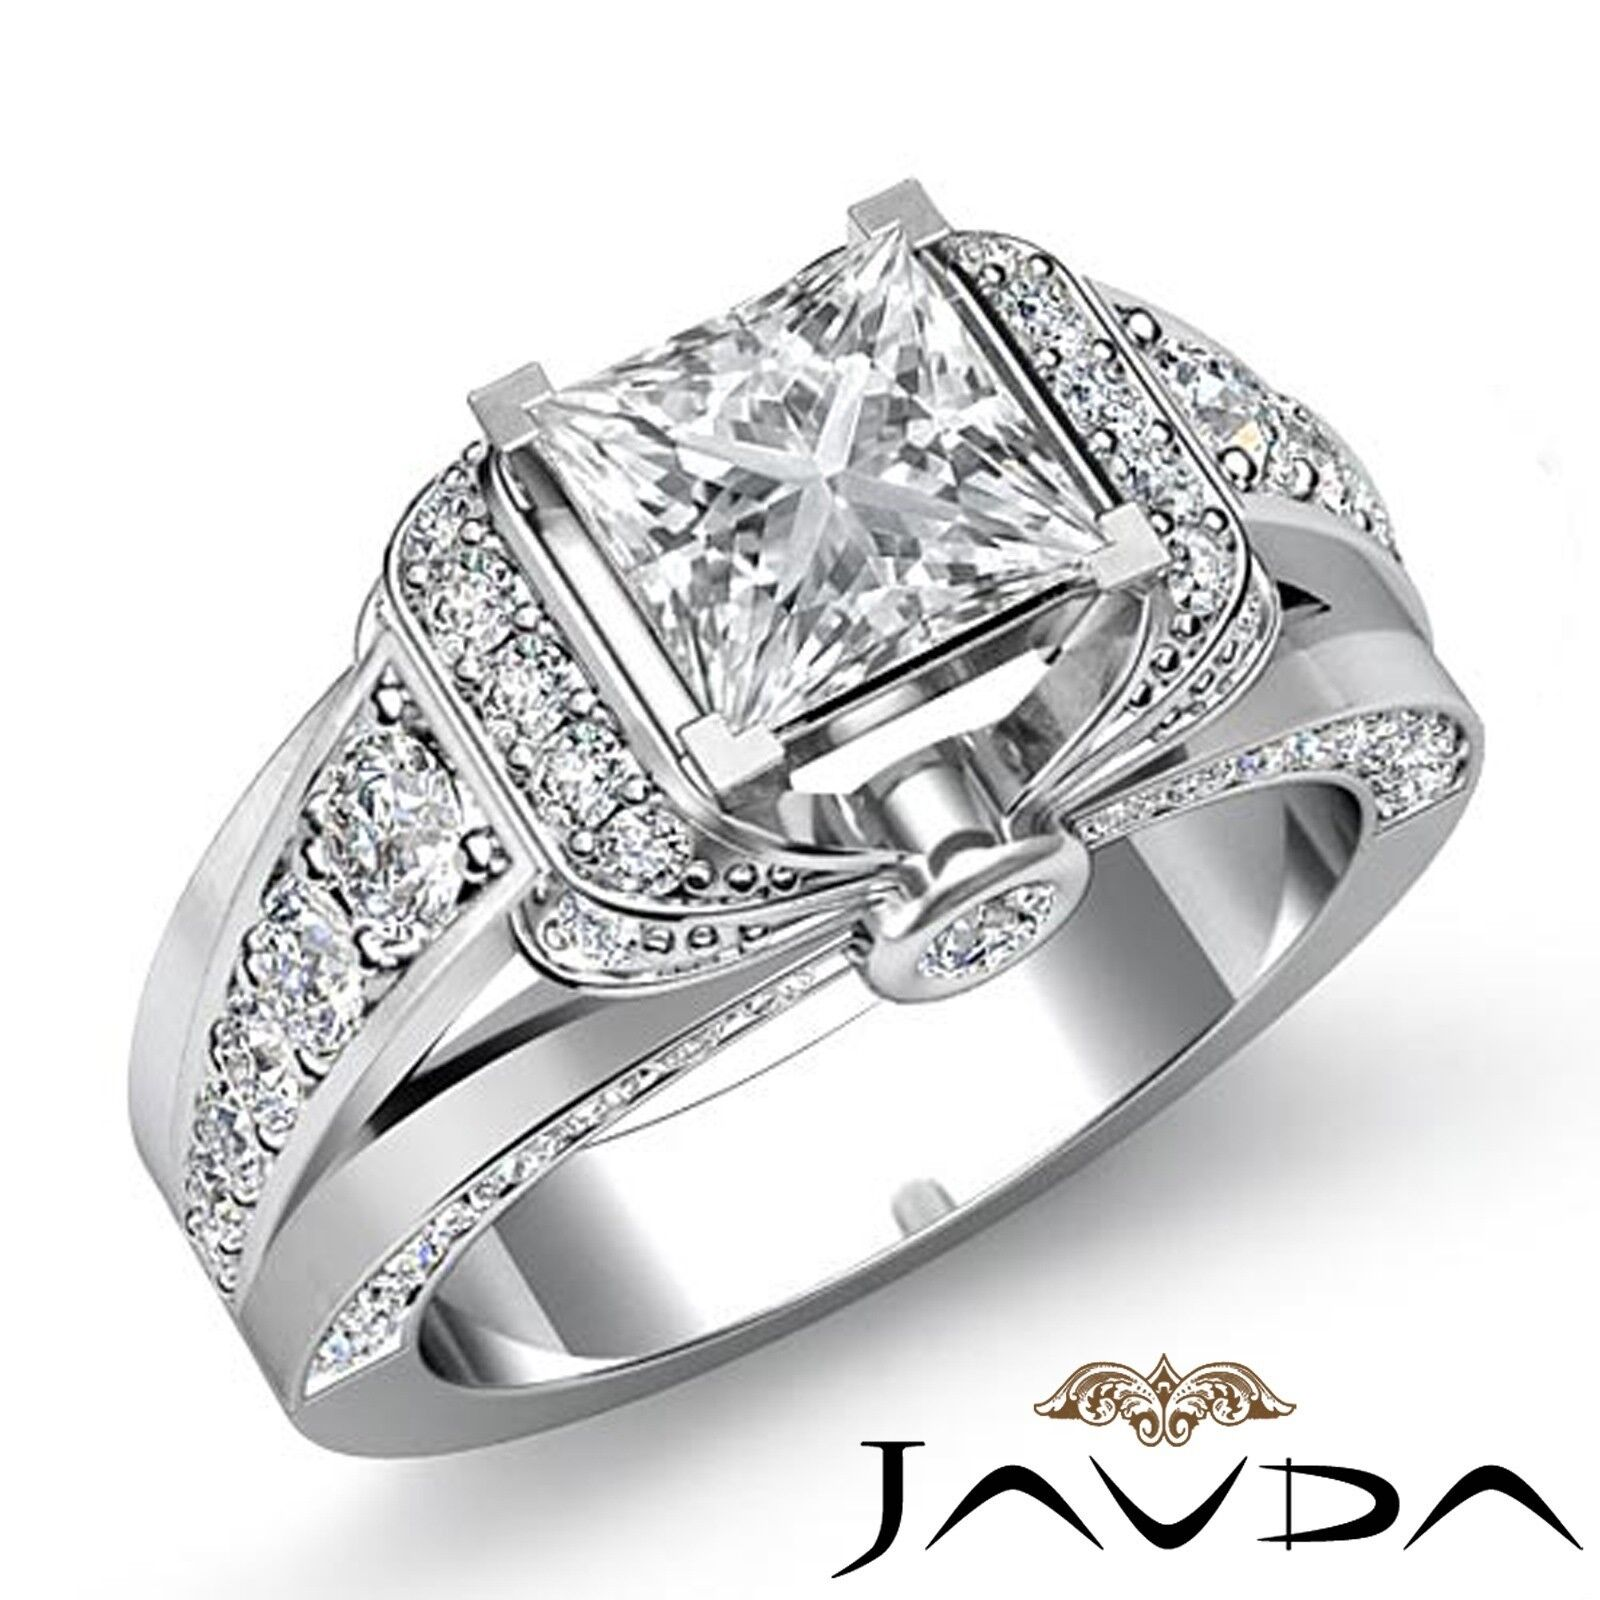 2.18ctw Classic Knot Sidestone Princess Diamond Engagement Ring GIA H-VS1 Gold